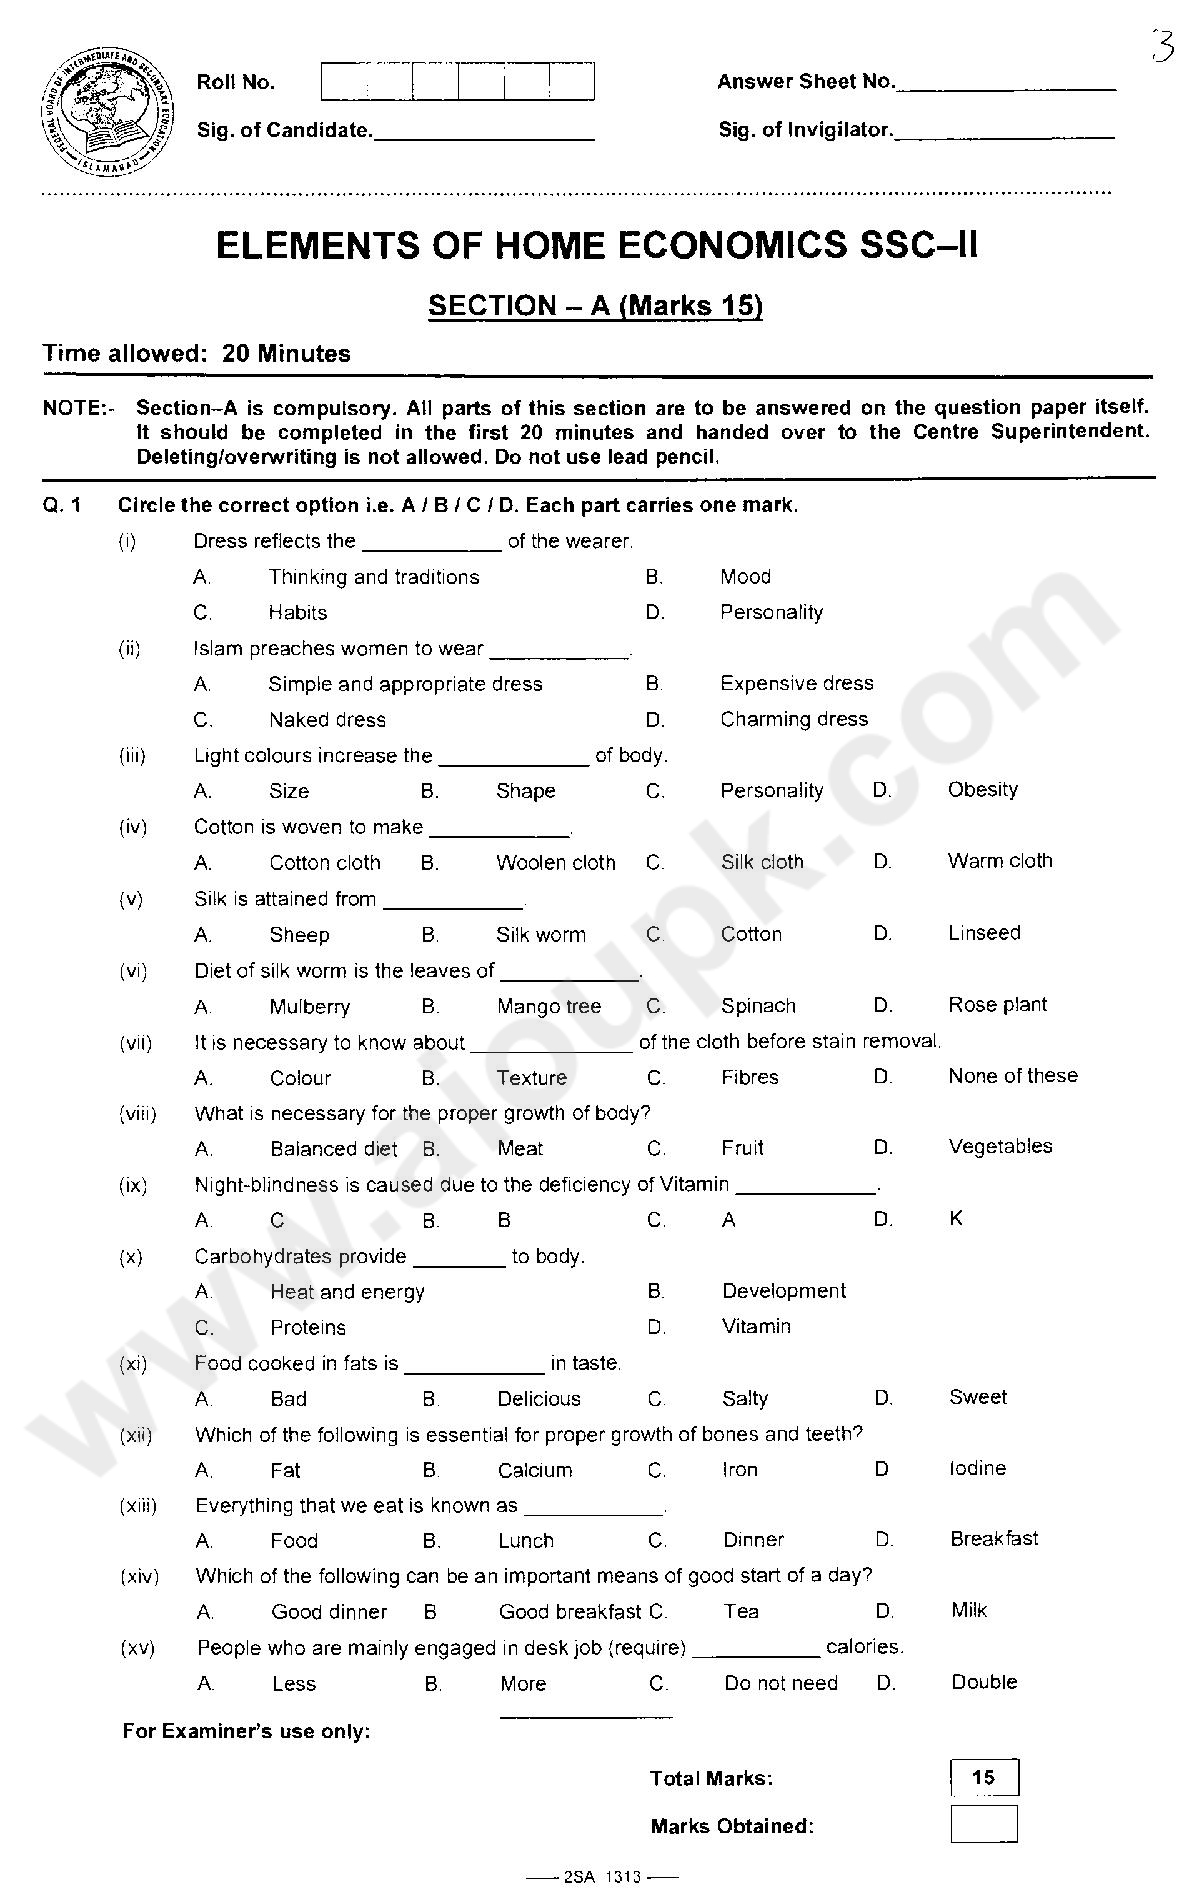 elements of home economics past model papers of matric ssc part 2 Elements of Family Crest elements of home economics ssc 2 fbise past papers 2014